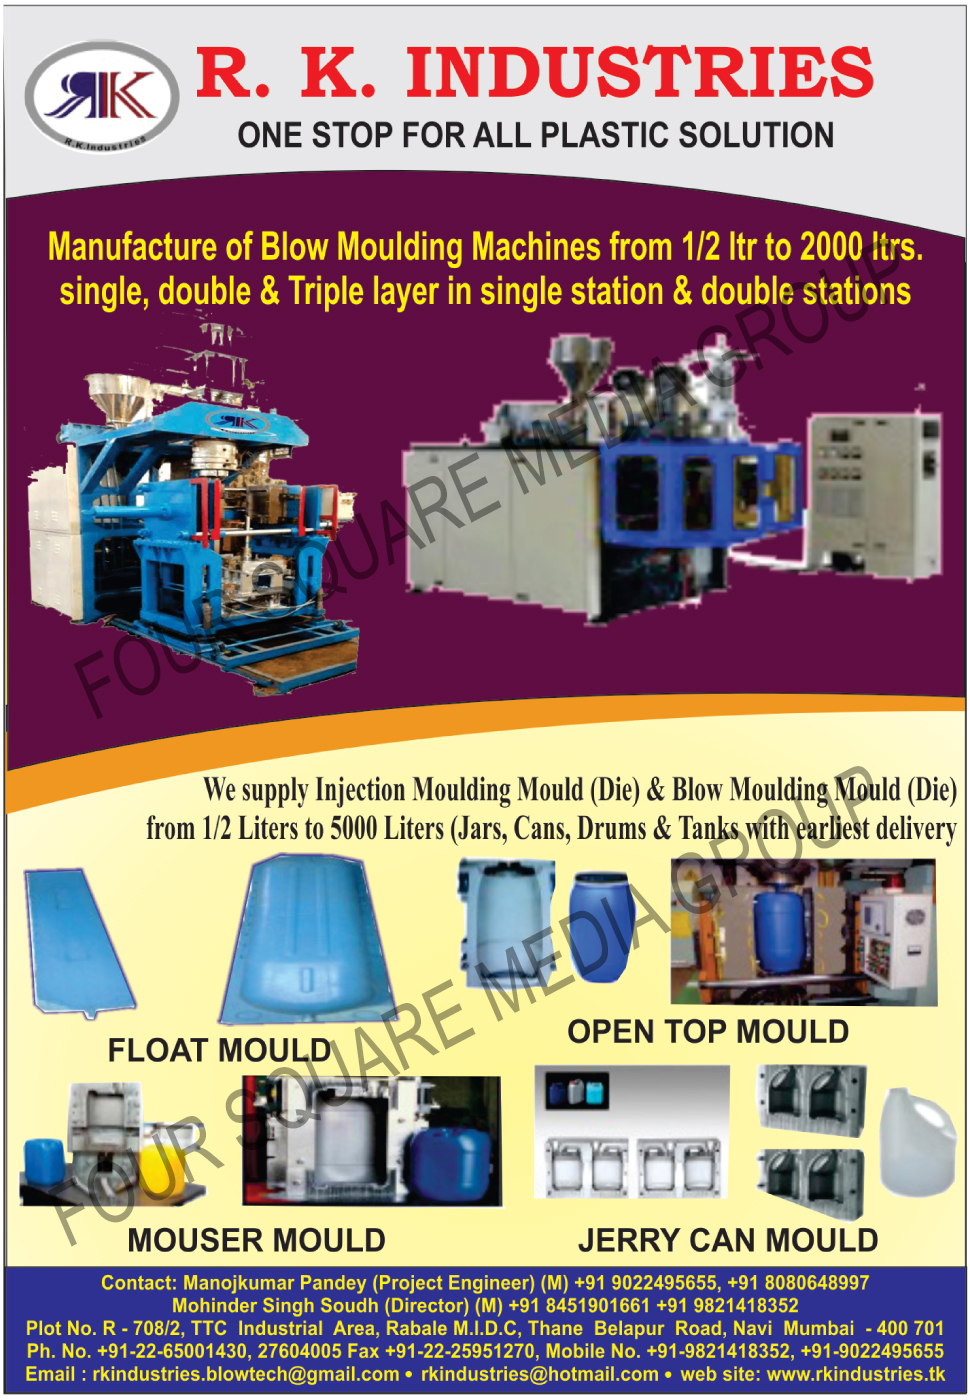 Blow Moulding Machines, Injection Moulding Moulds, Injection Moulding Dies, Blow Moulding Moulds, Blow Moulding Dies, Float Moulds, Open Top Moulds, Mouser Moulds, Jerry Can Moulds